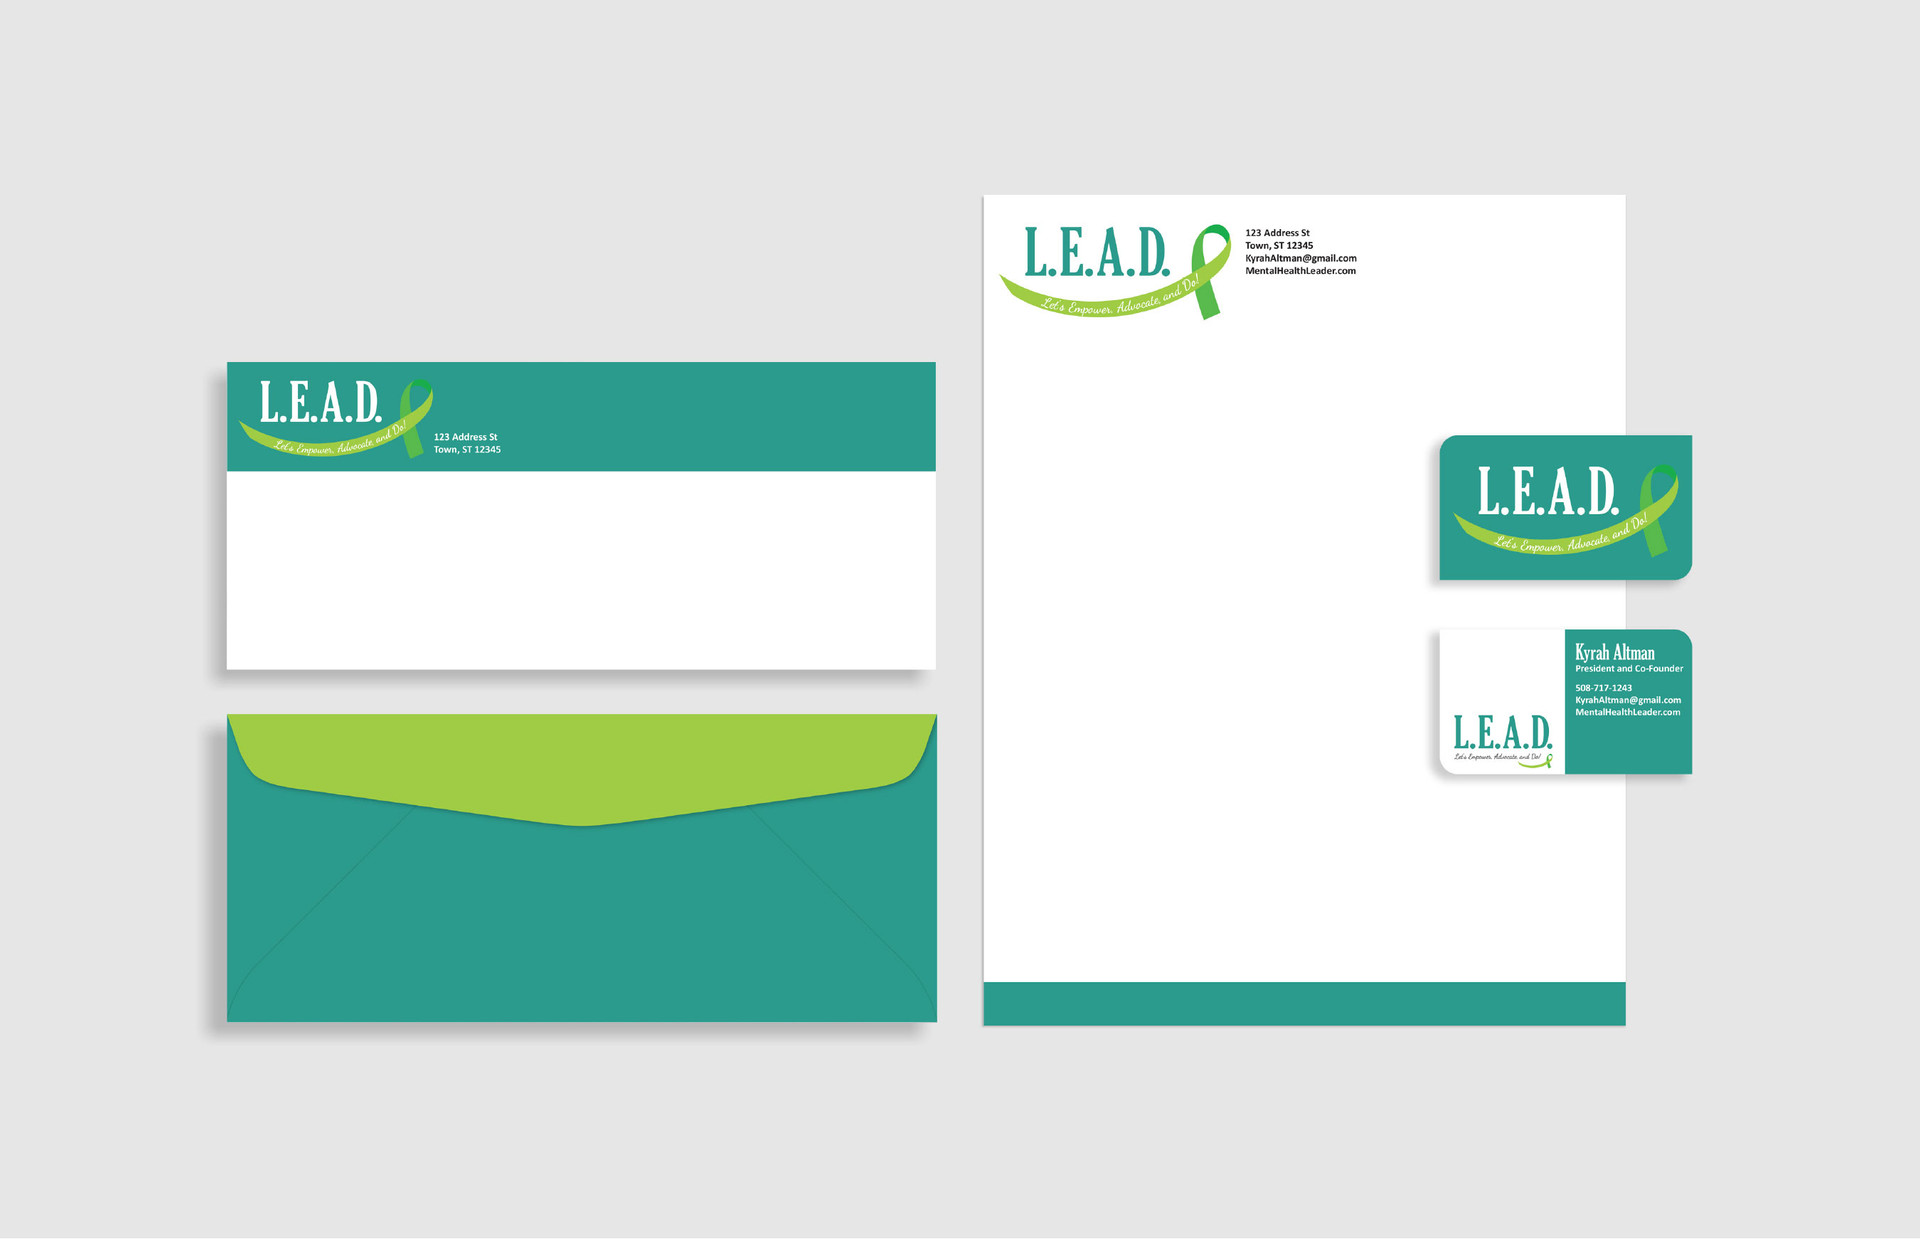 LOGO, STATIONERY, PRINT DESIGN